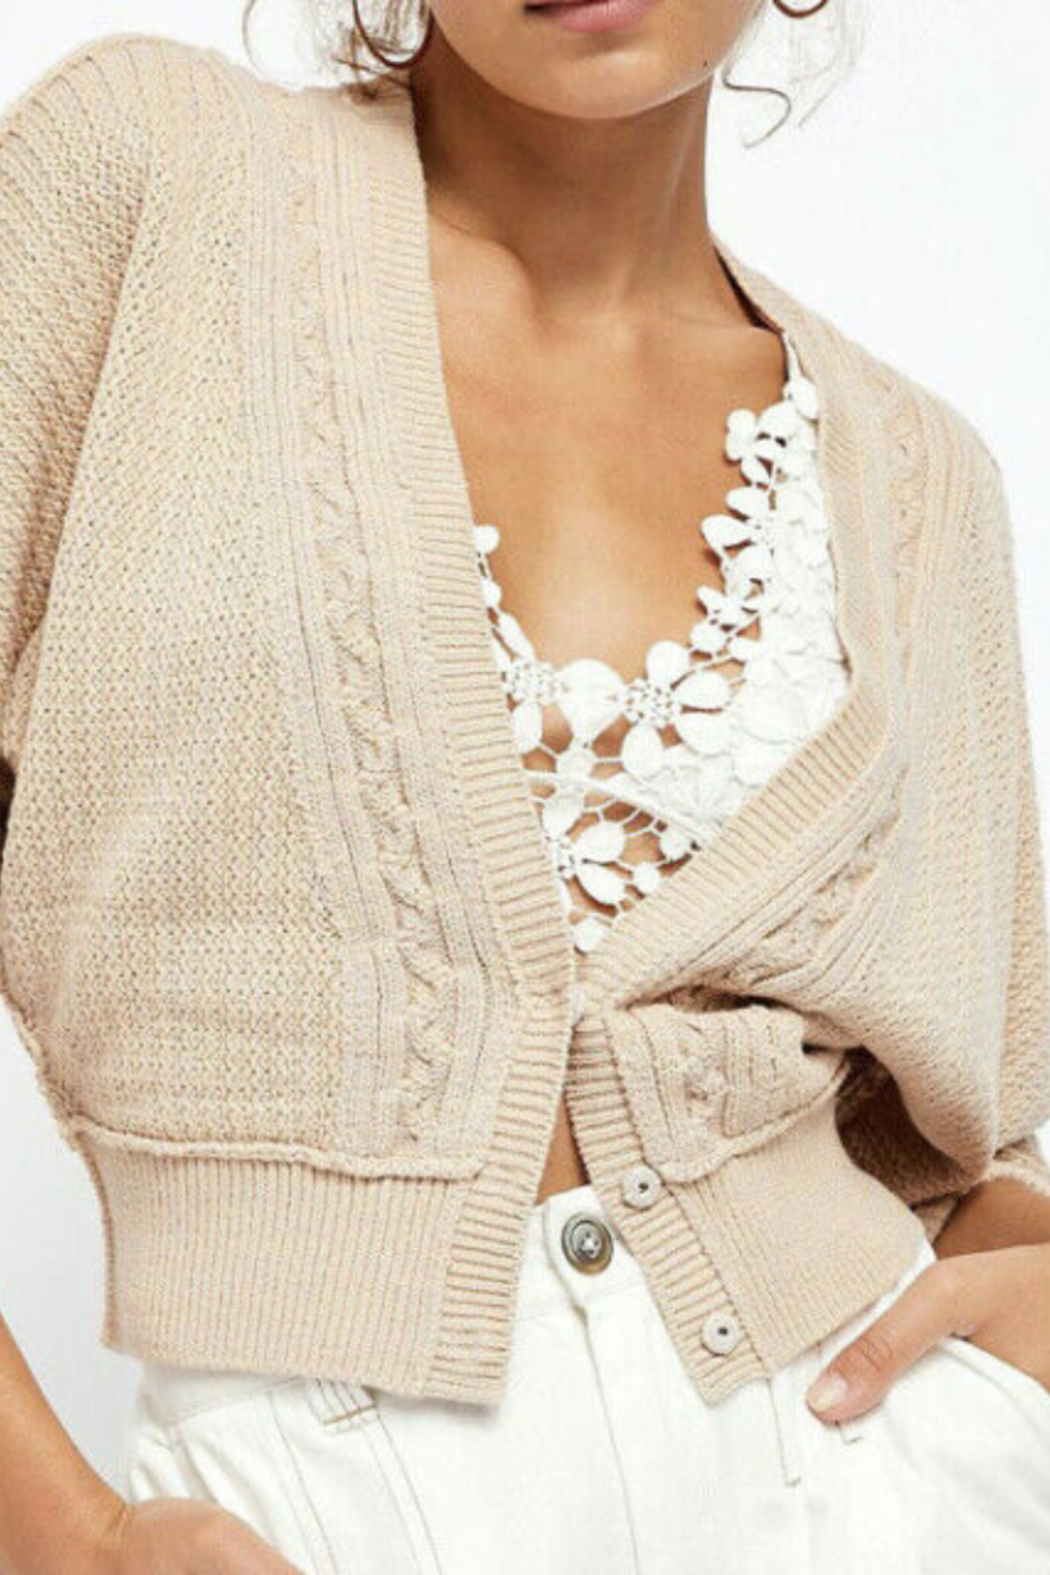 Free People FP Cardigan in Soft Pink - Main Image